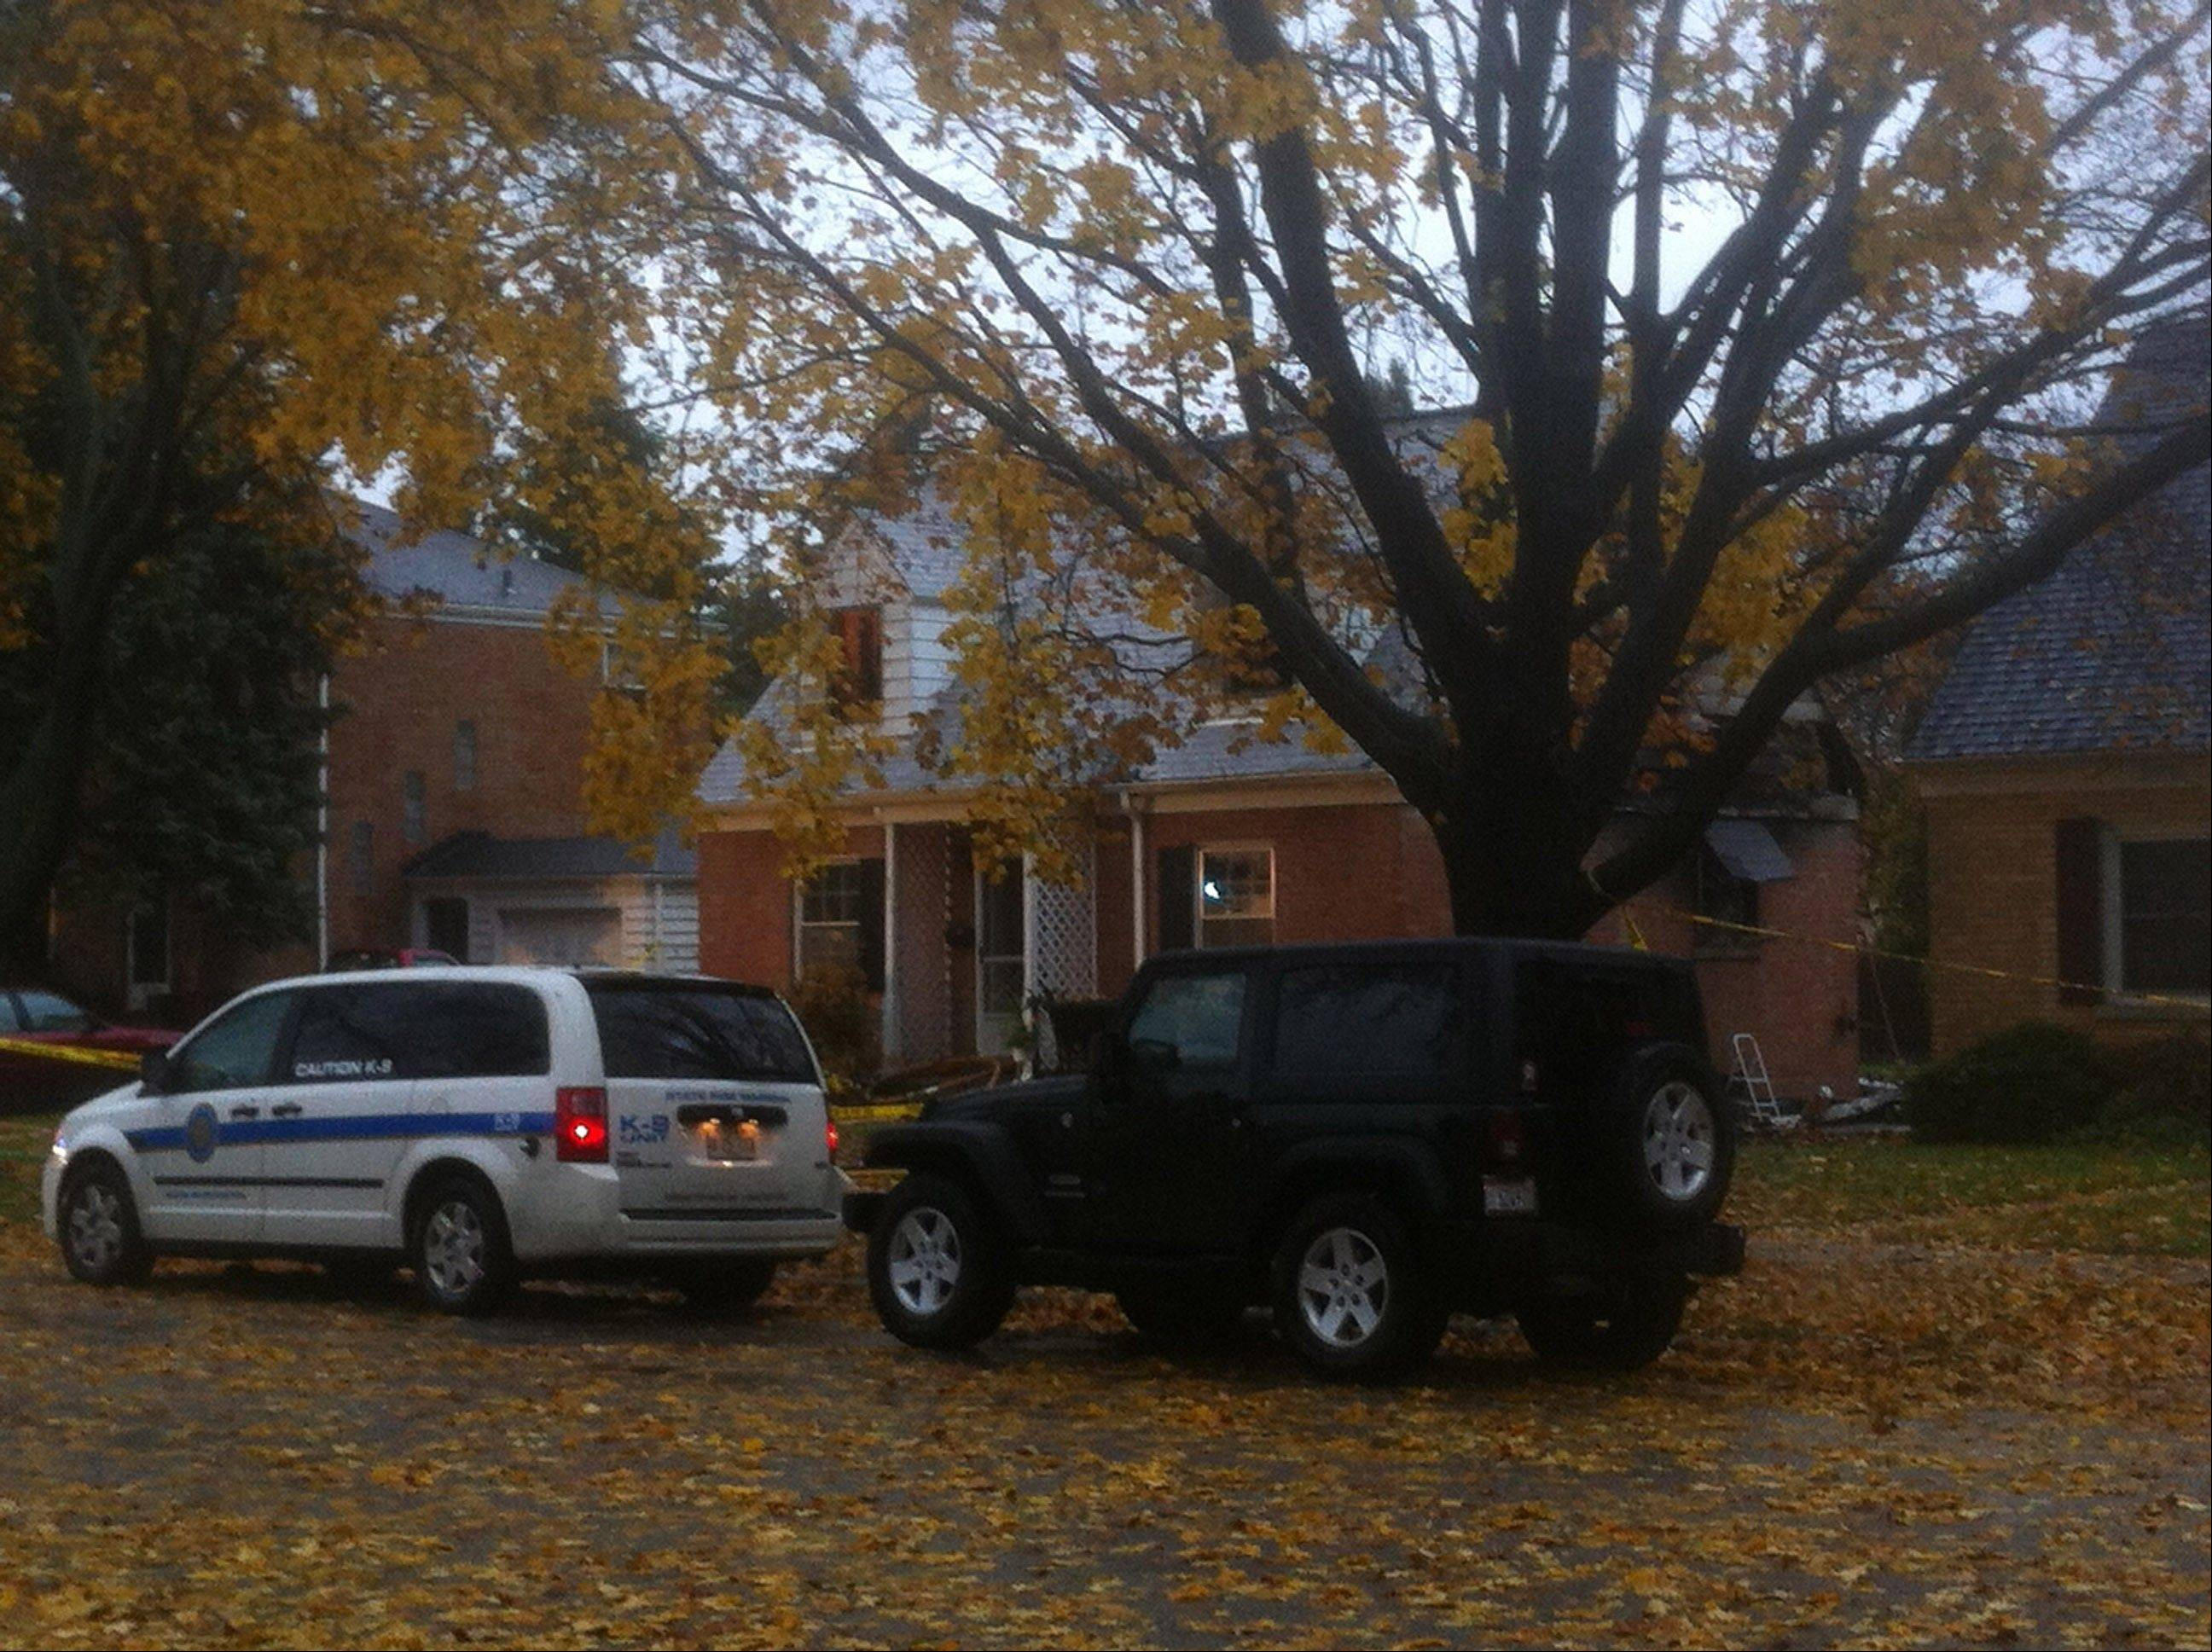 Neighbors had visited the house on the 300 block of South Dunton Avenue in Arlington Heights for Halloween.